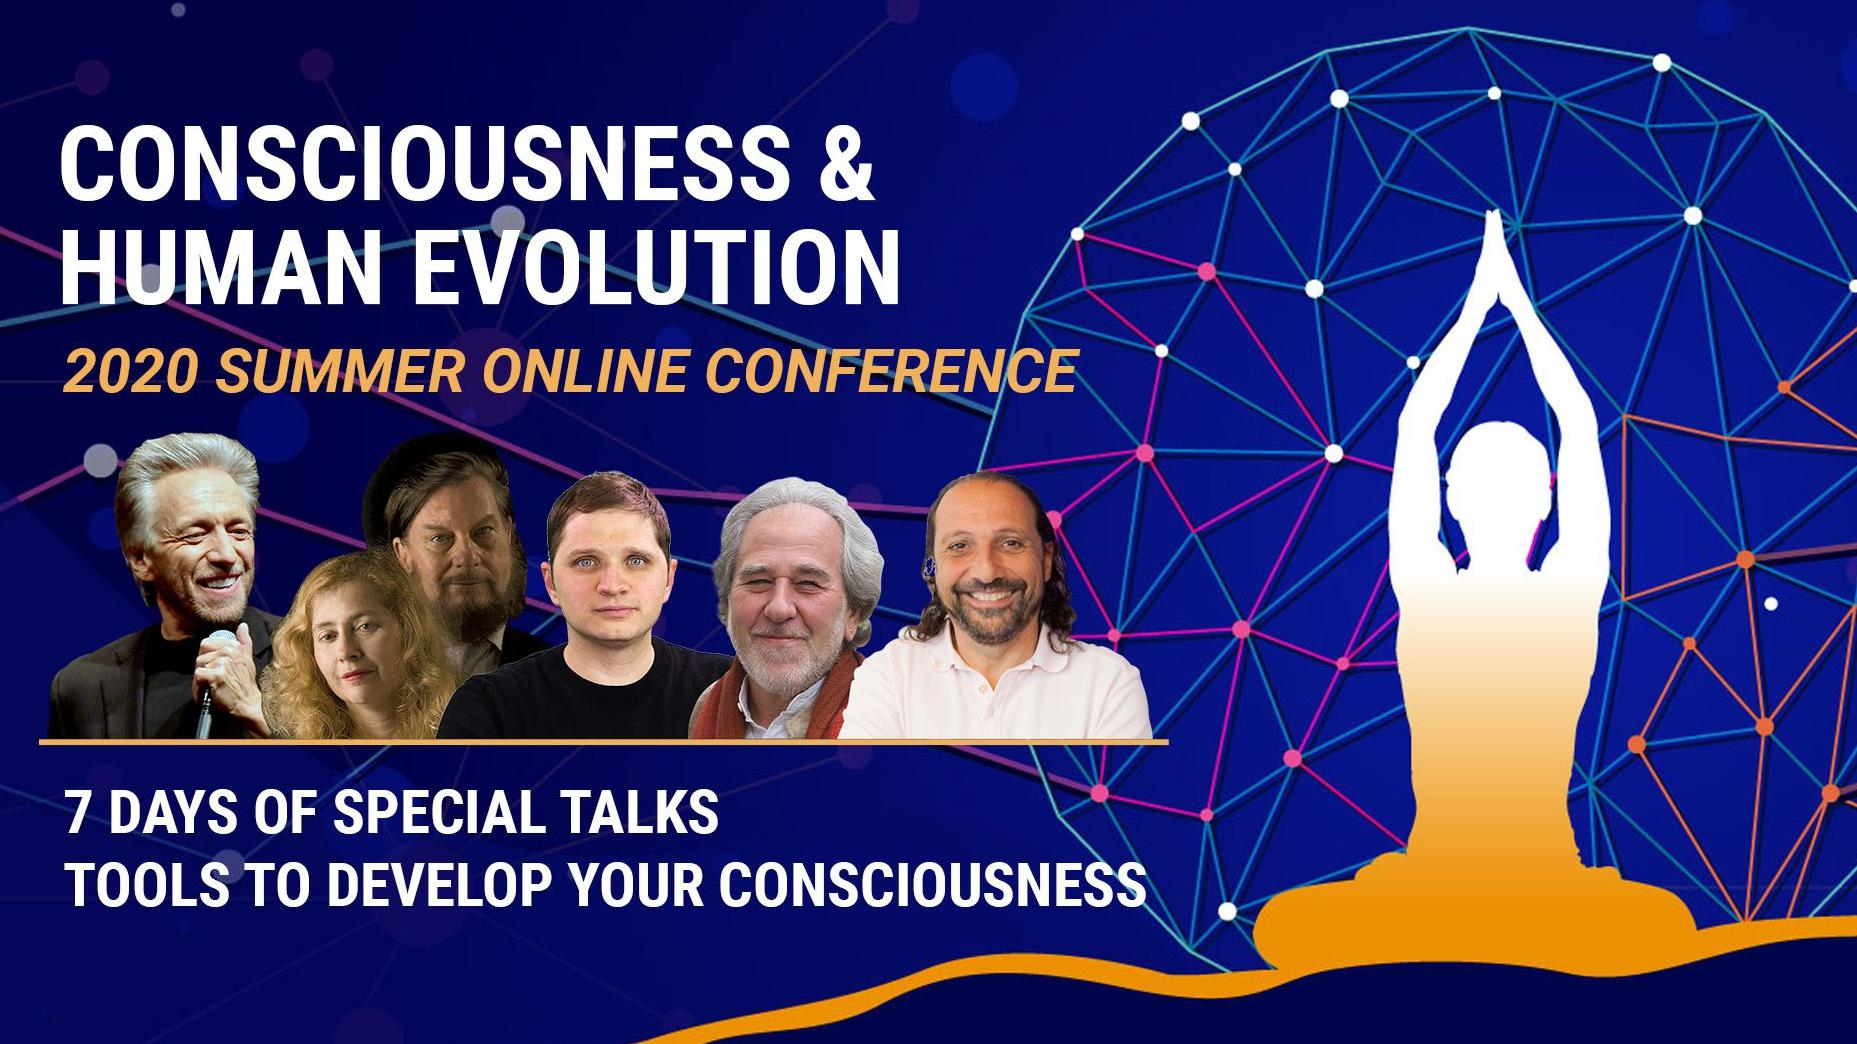 The Online Conference for Consciousness and Human Evolution 2020